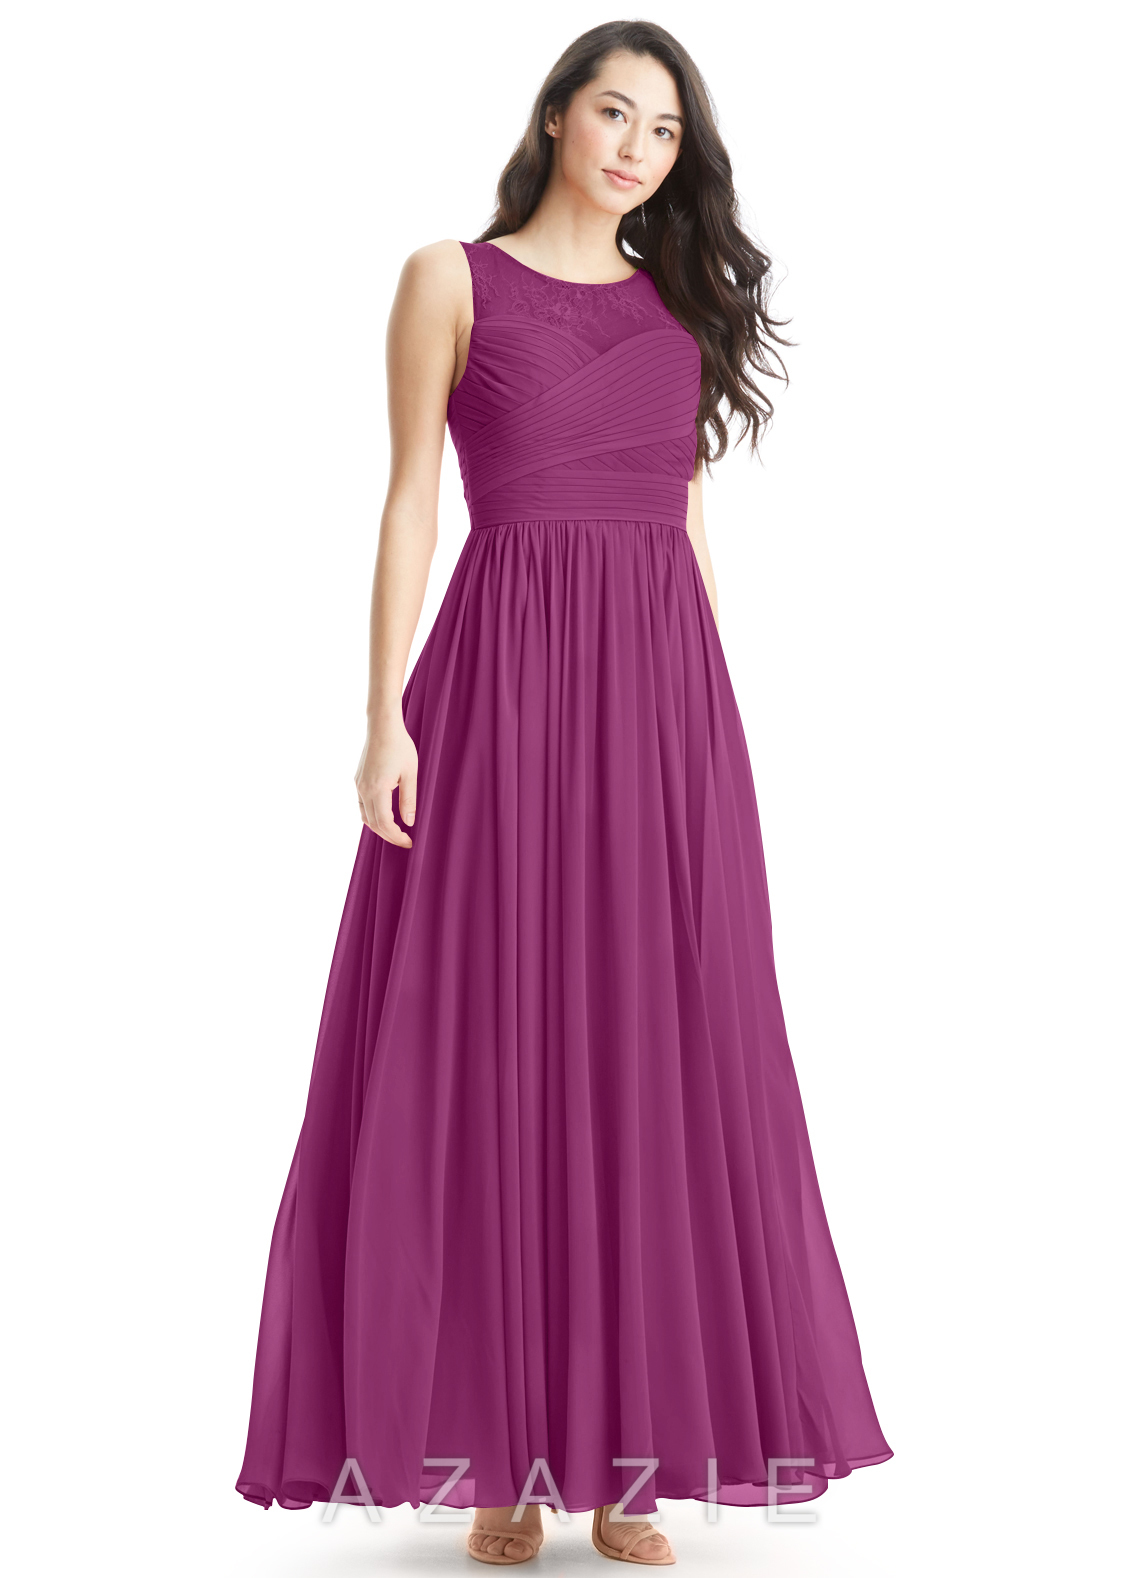 Azazie Aliya Bridesmaid Dress | Azazie